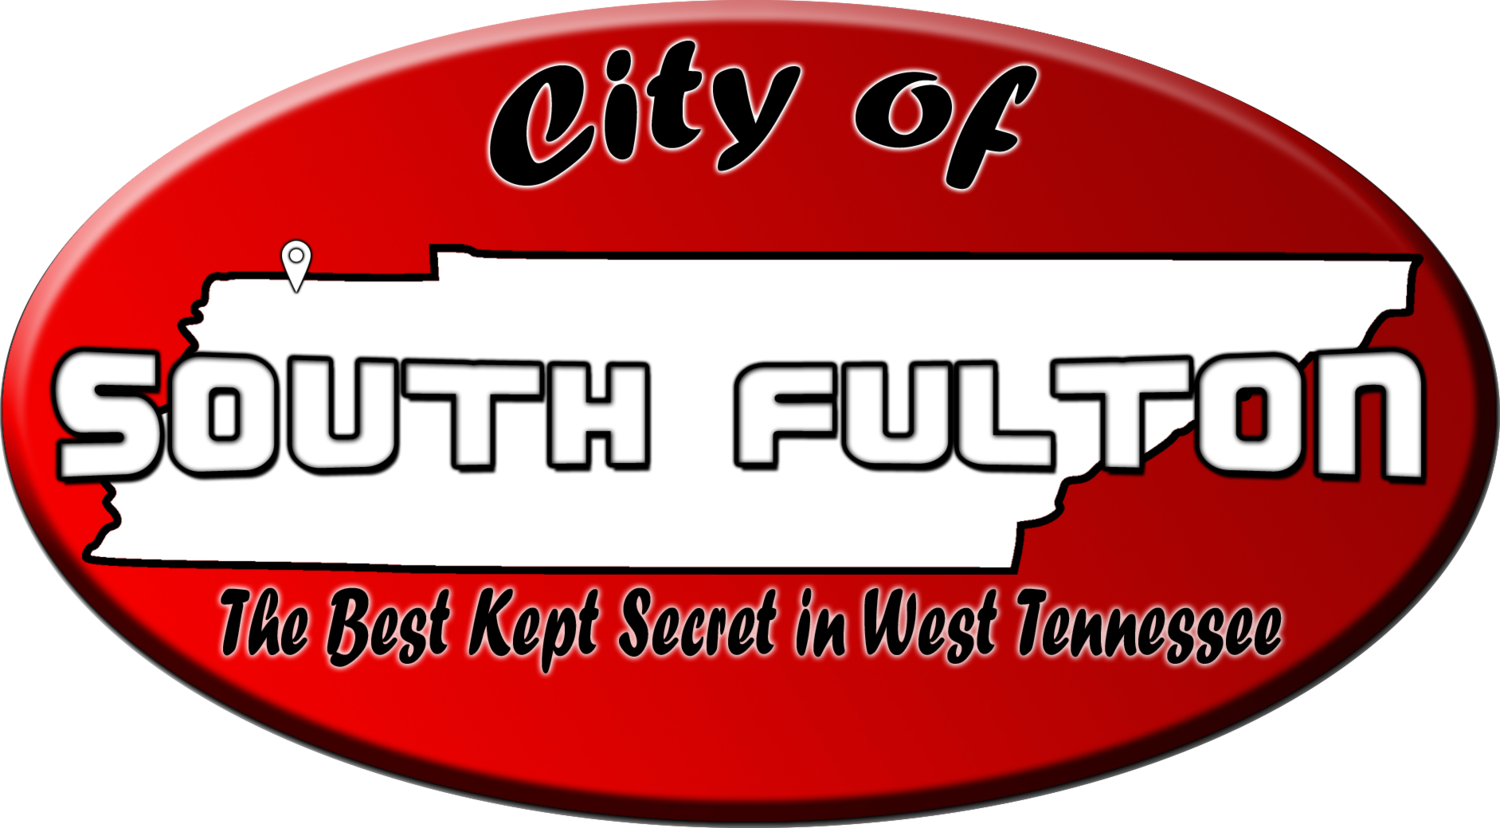 City of South Fulton, TN